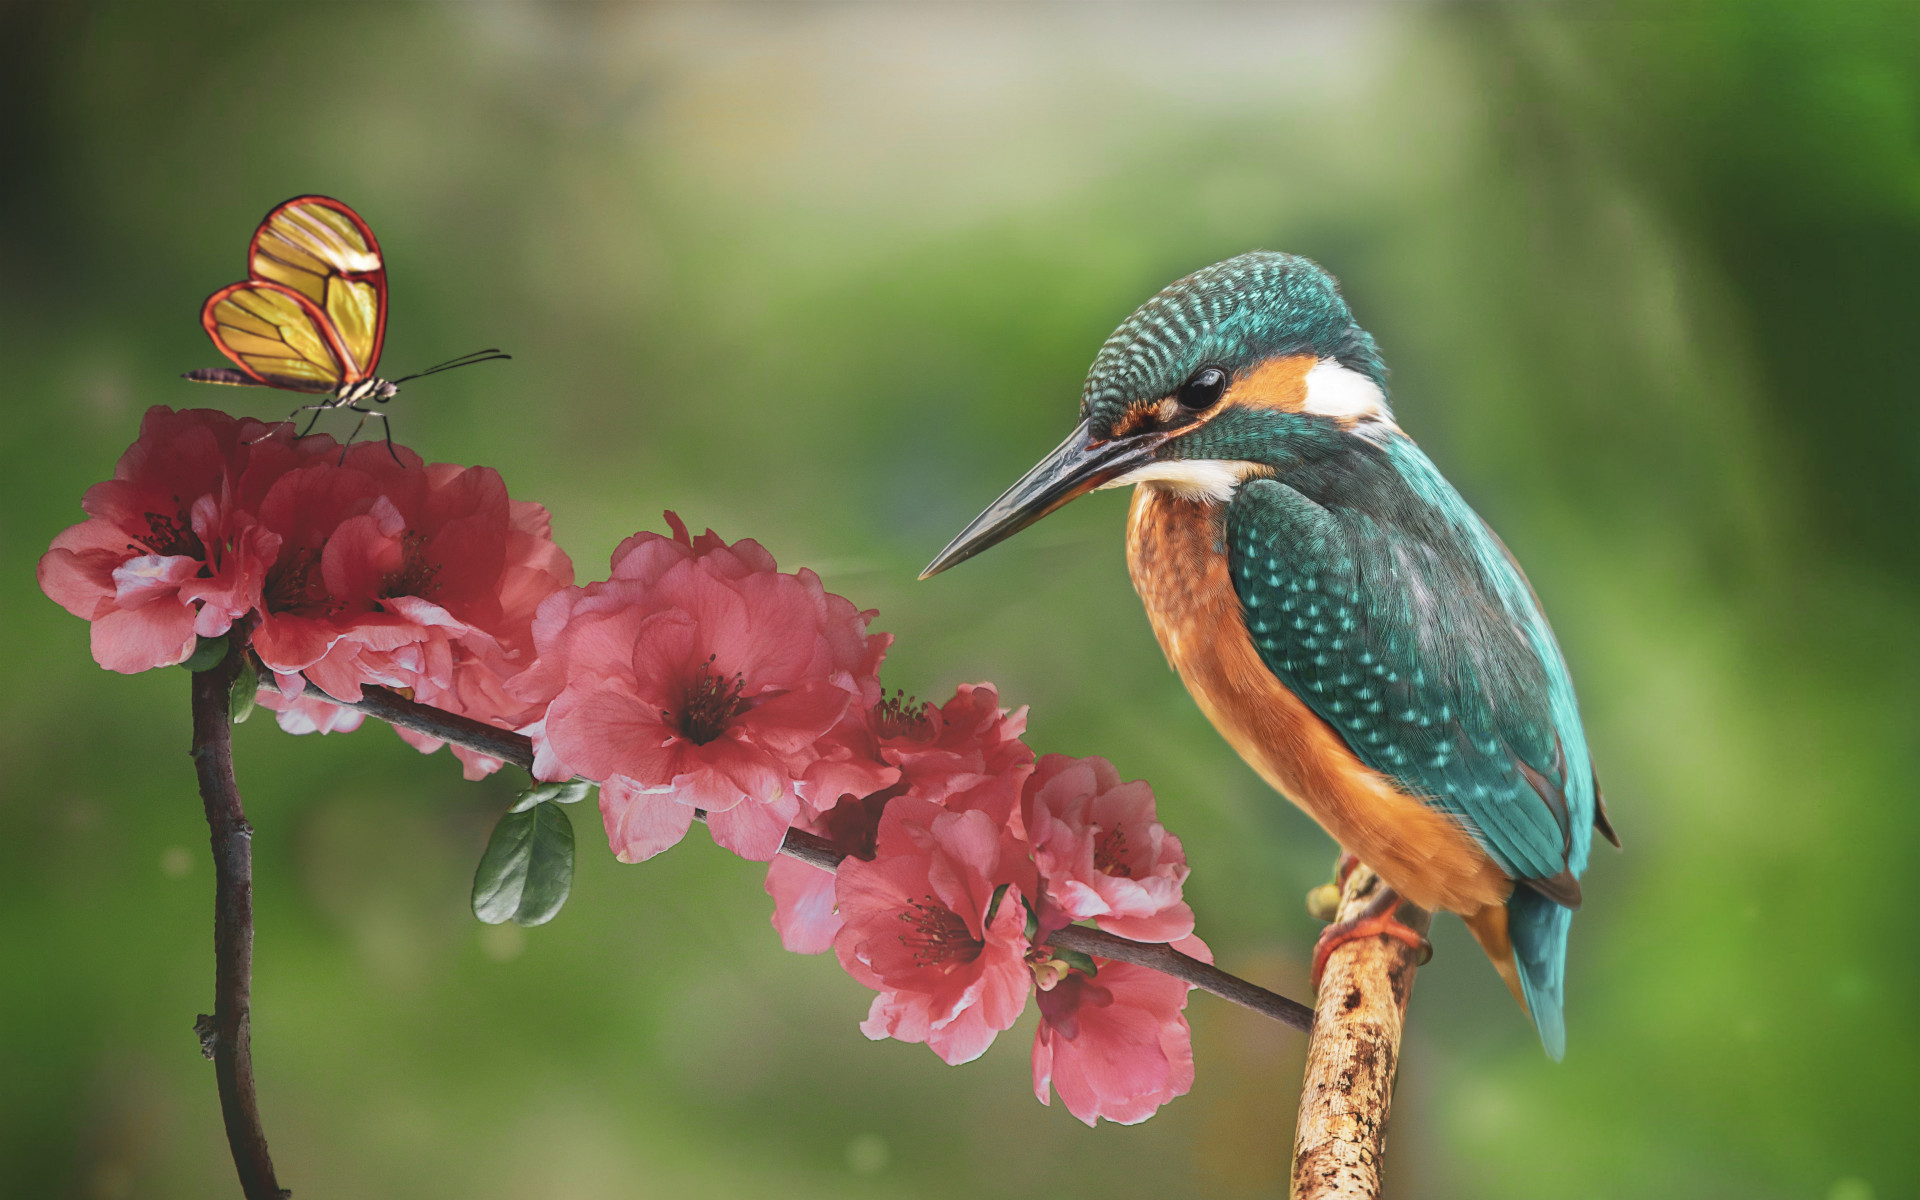 Kingfisher and the butterfly wallpaper 1920x1200